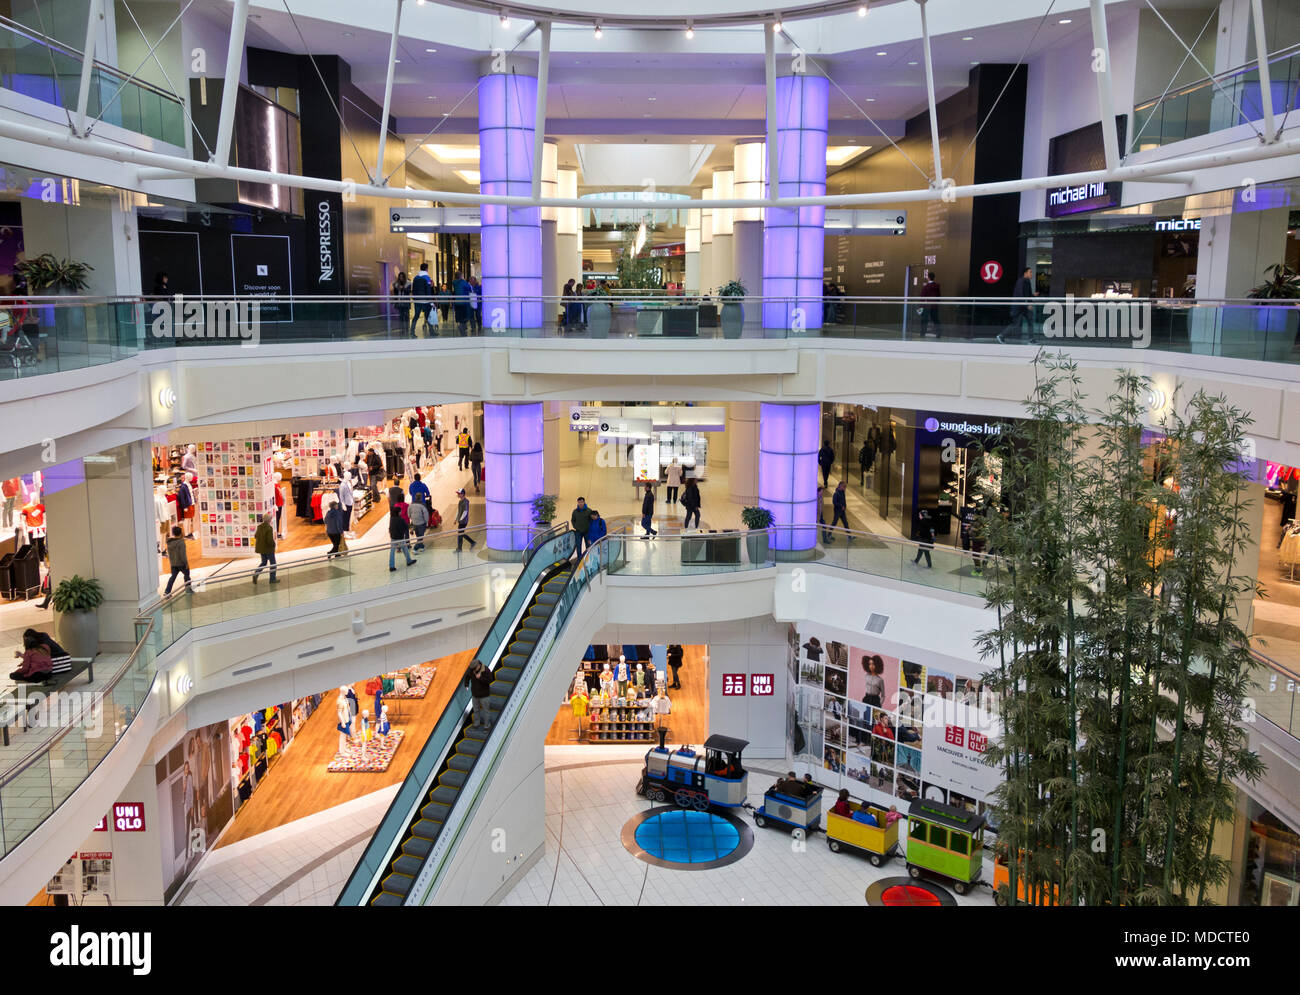 Metropolis at Metrotown shopping mall in Burnaby, BC, Canada.  Interior of a large shopping centre in Metro Vancouver. - Stock Image